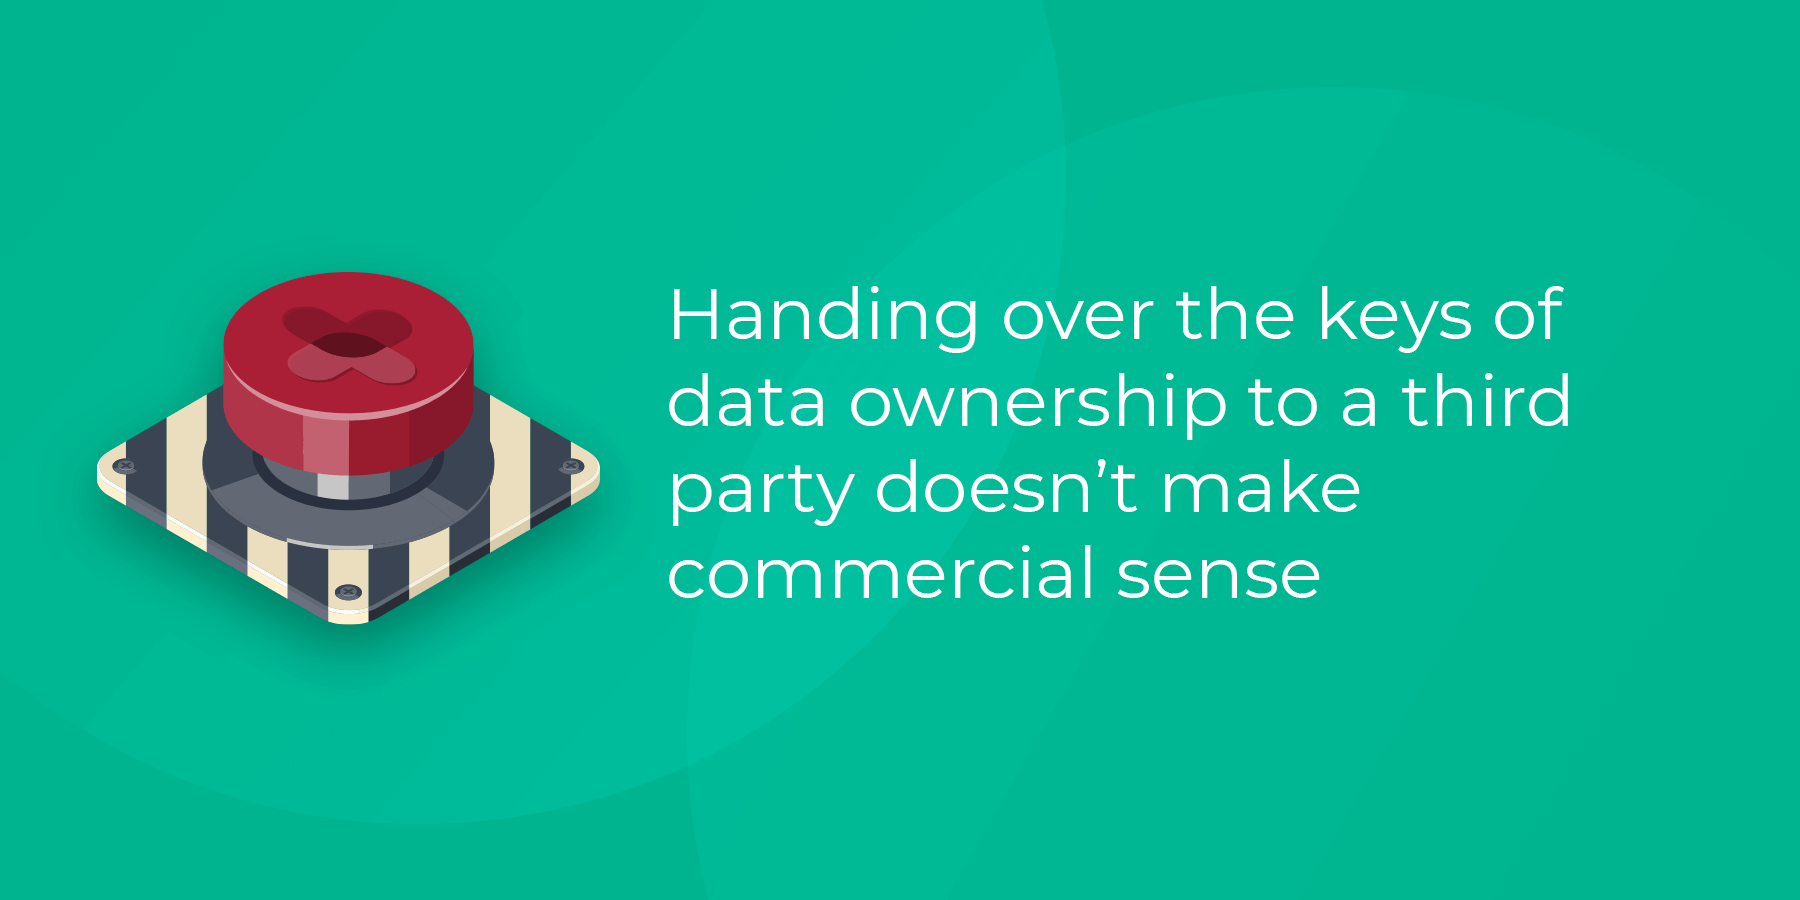 Handing over control of data to a third-party doesn't make commercial sense